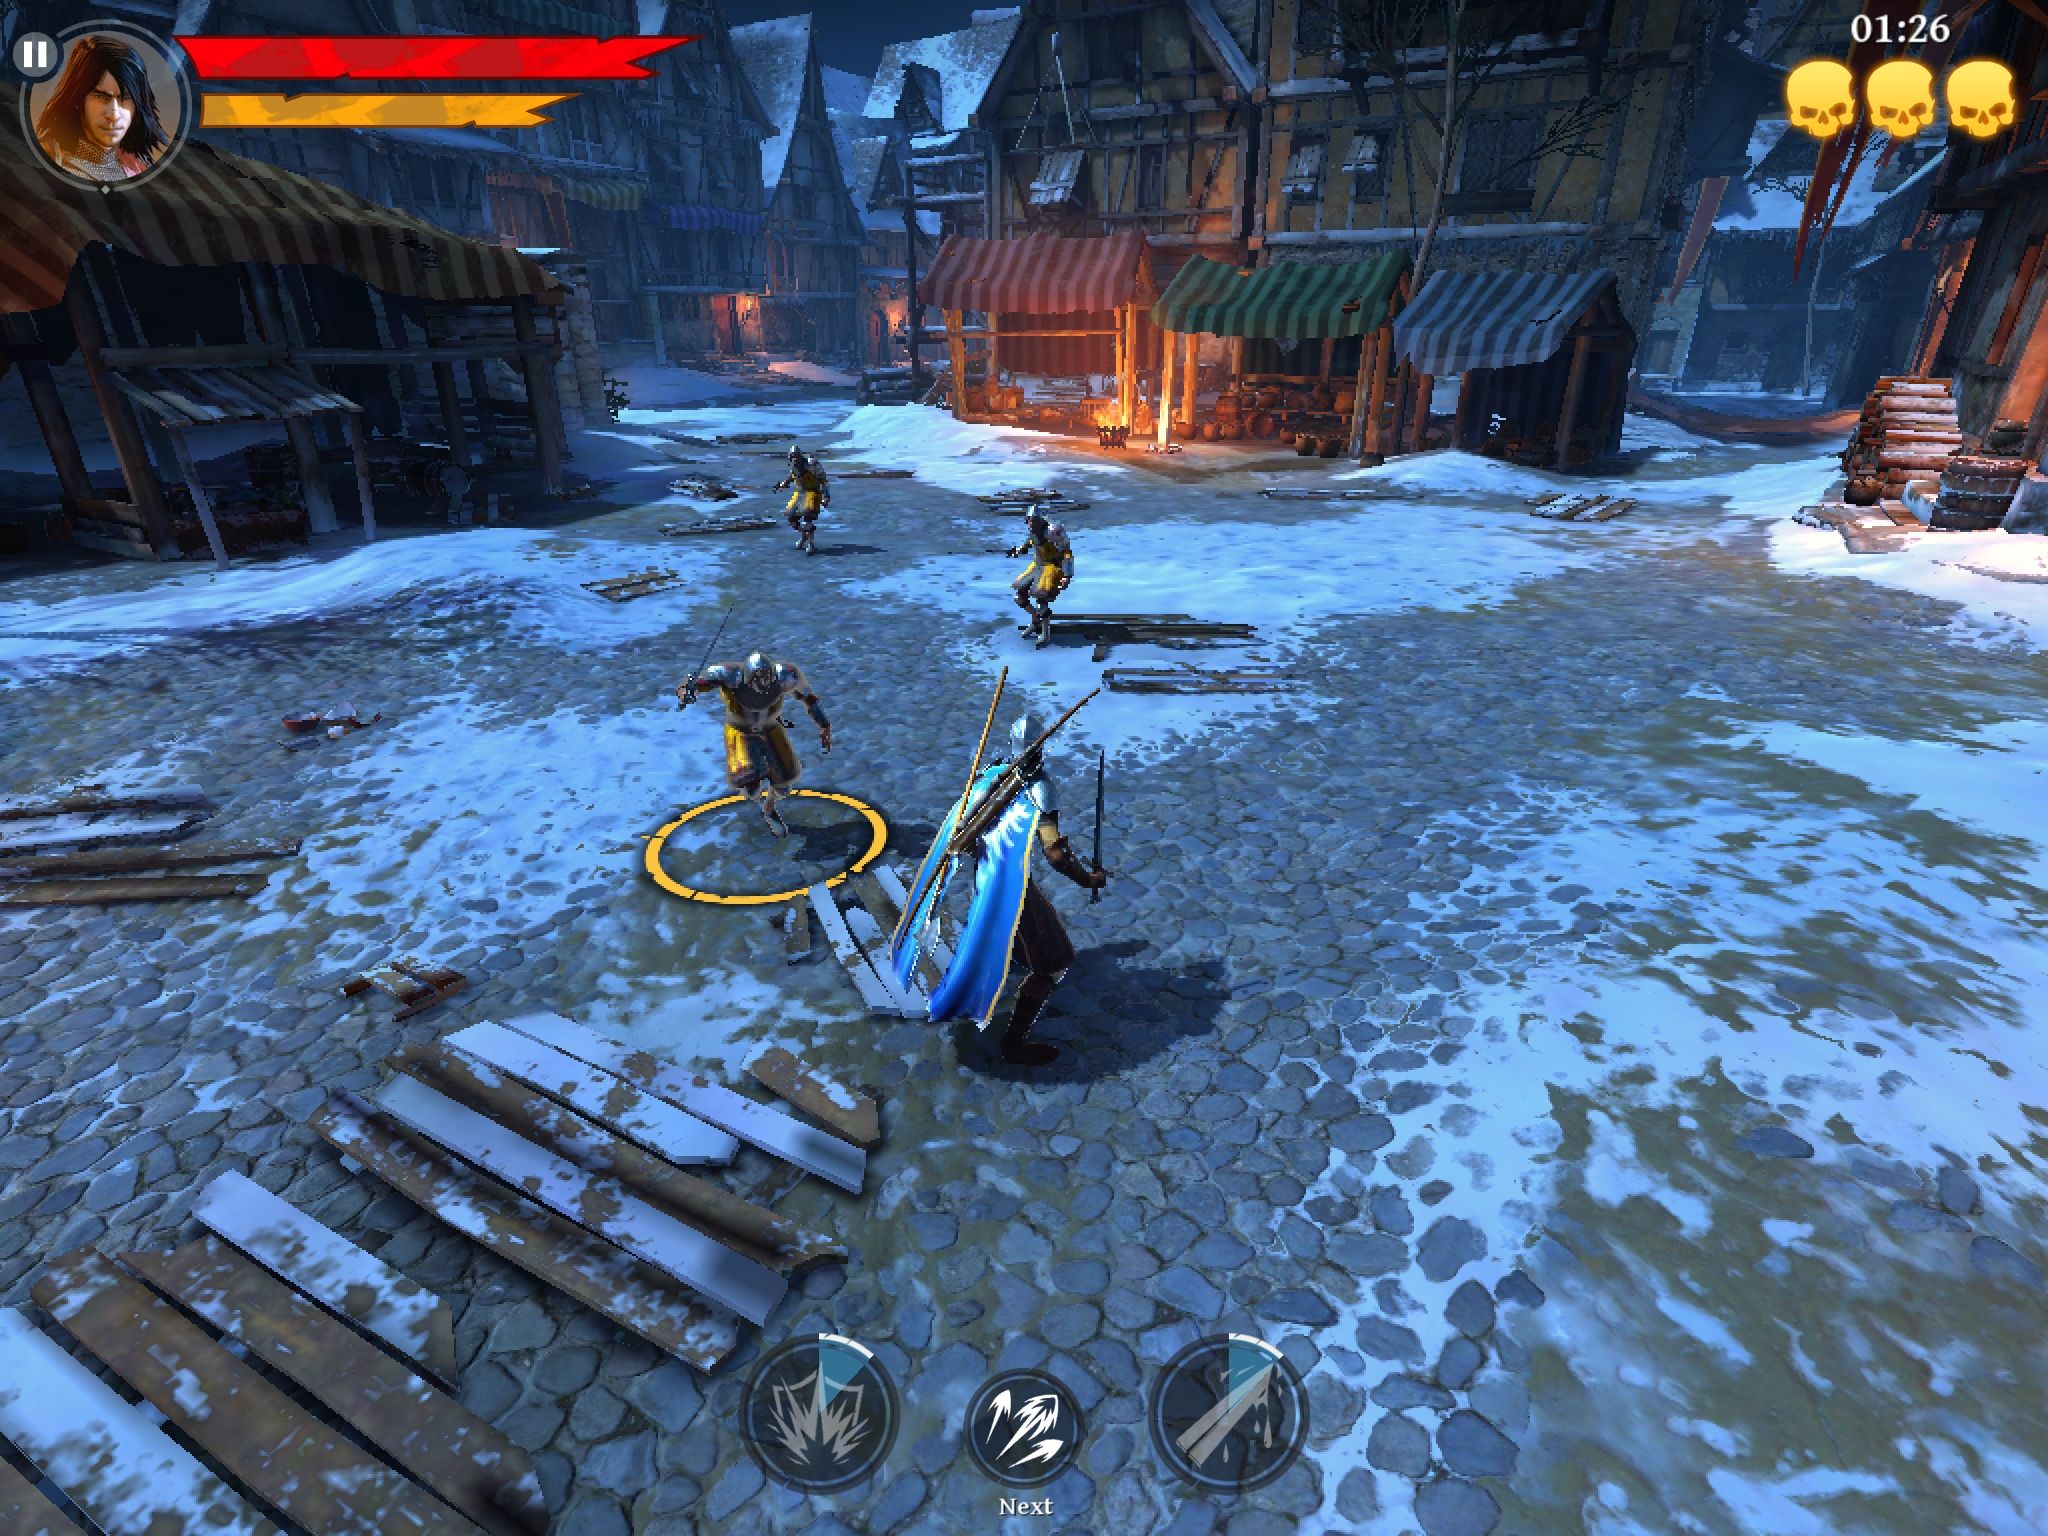 Iron Blade: Medieval Legends review - A hack-n-slash with plenty of good ideas